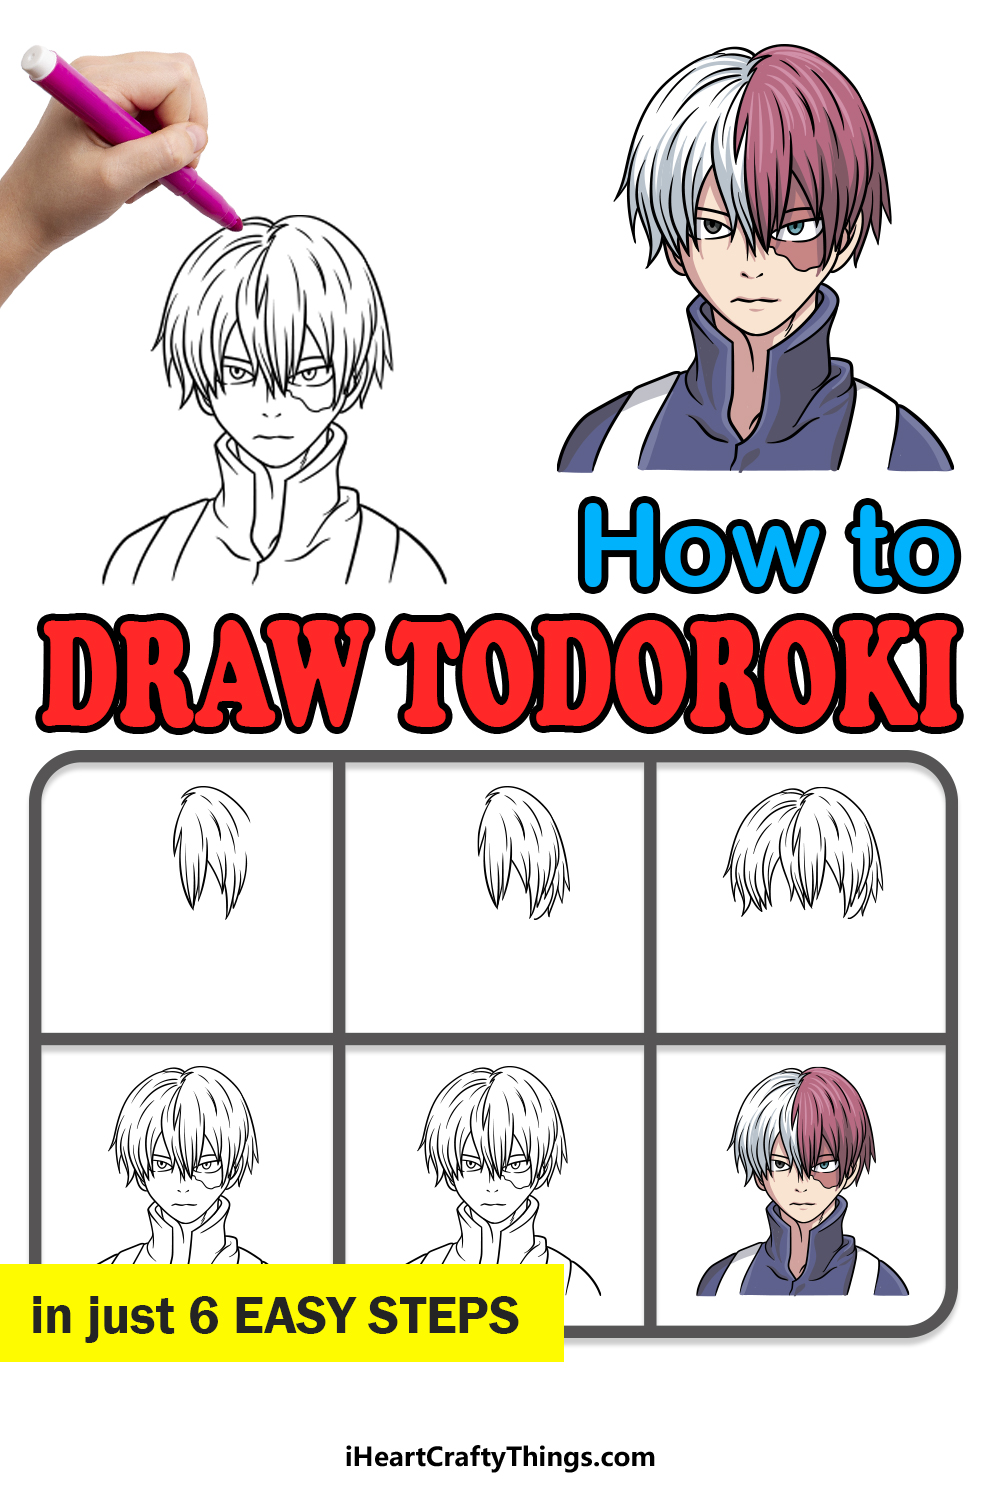 how to draw todoroki in 6 easy steps